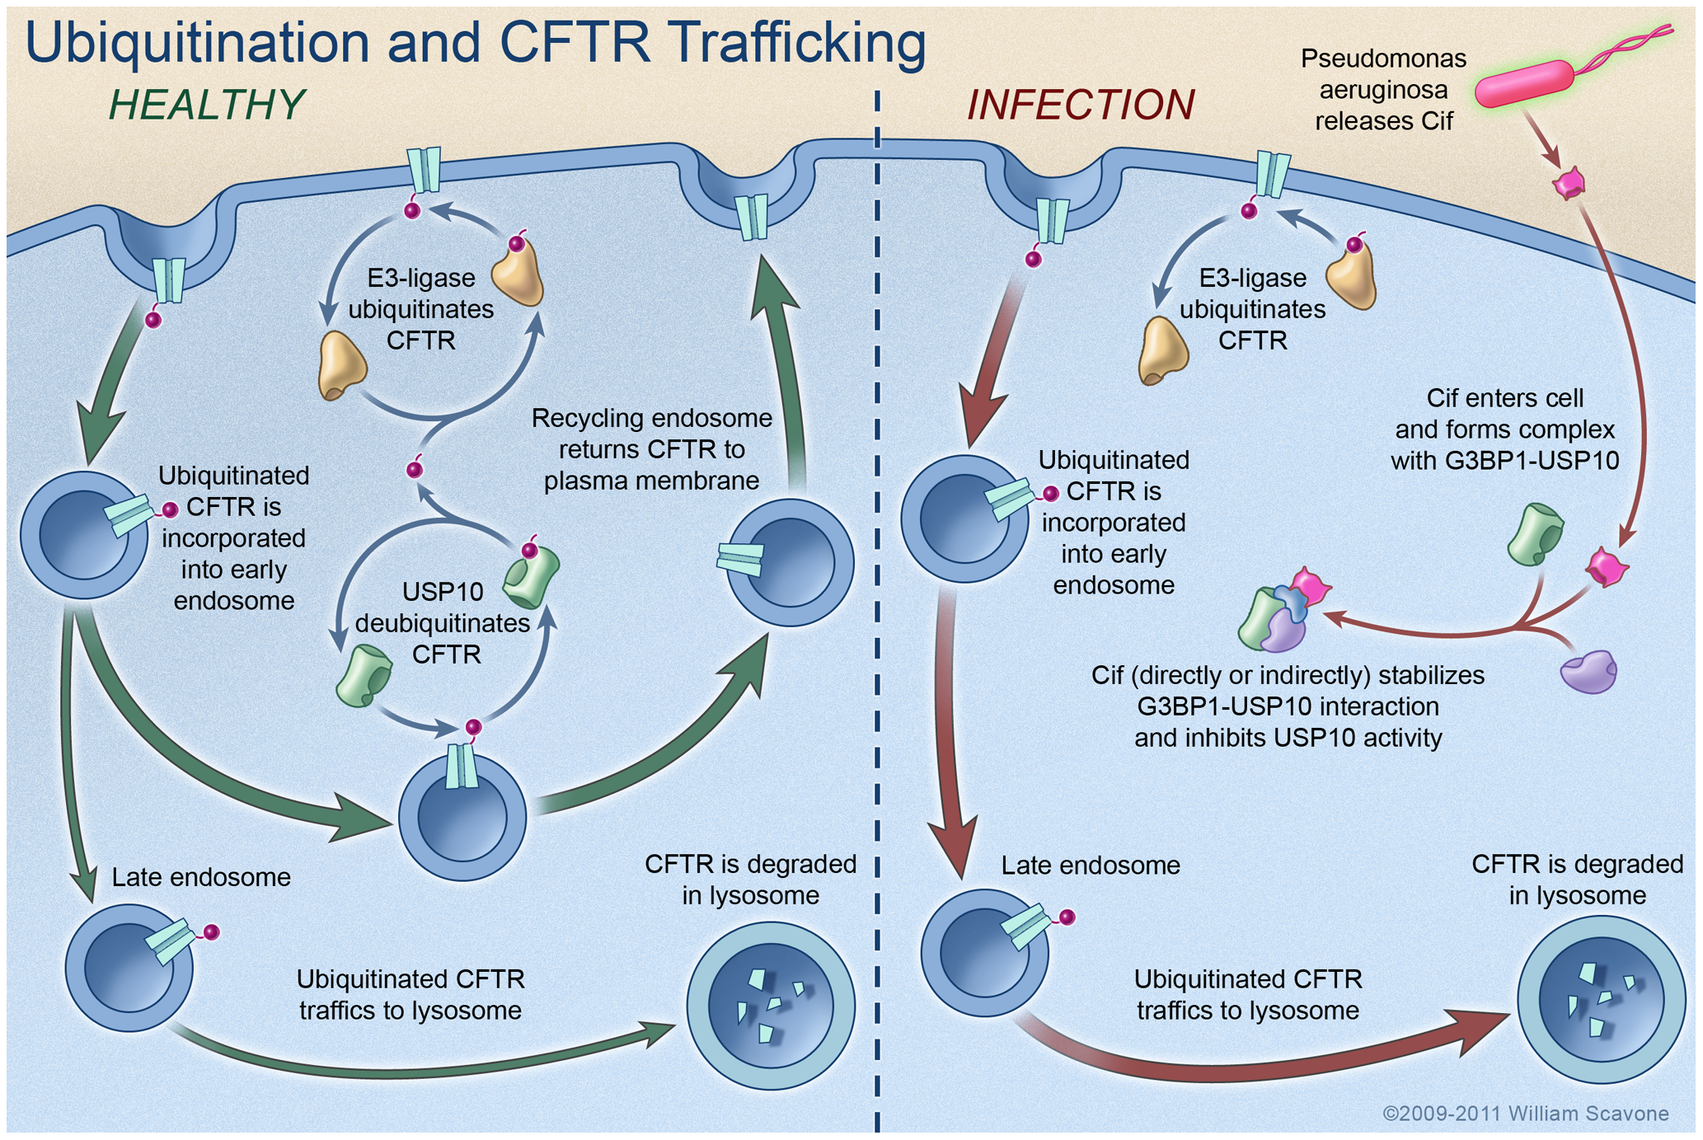 Model proposing a mechanism whereby Cif inhibits USP10 activity and reduces the apical membrane abundance of CFTR in polarized, human airway epithelial cells.